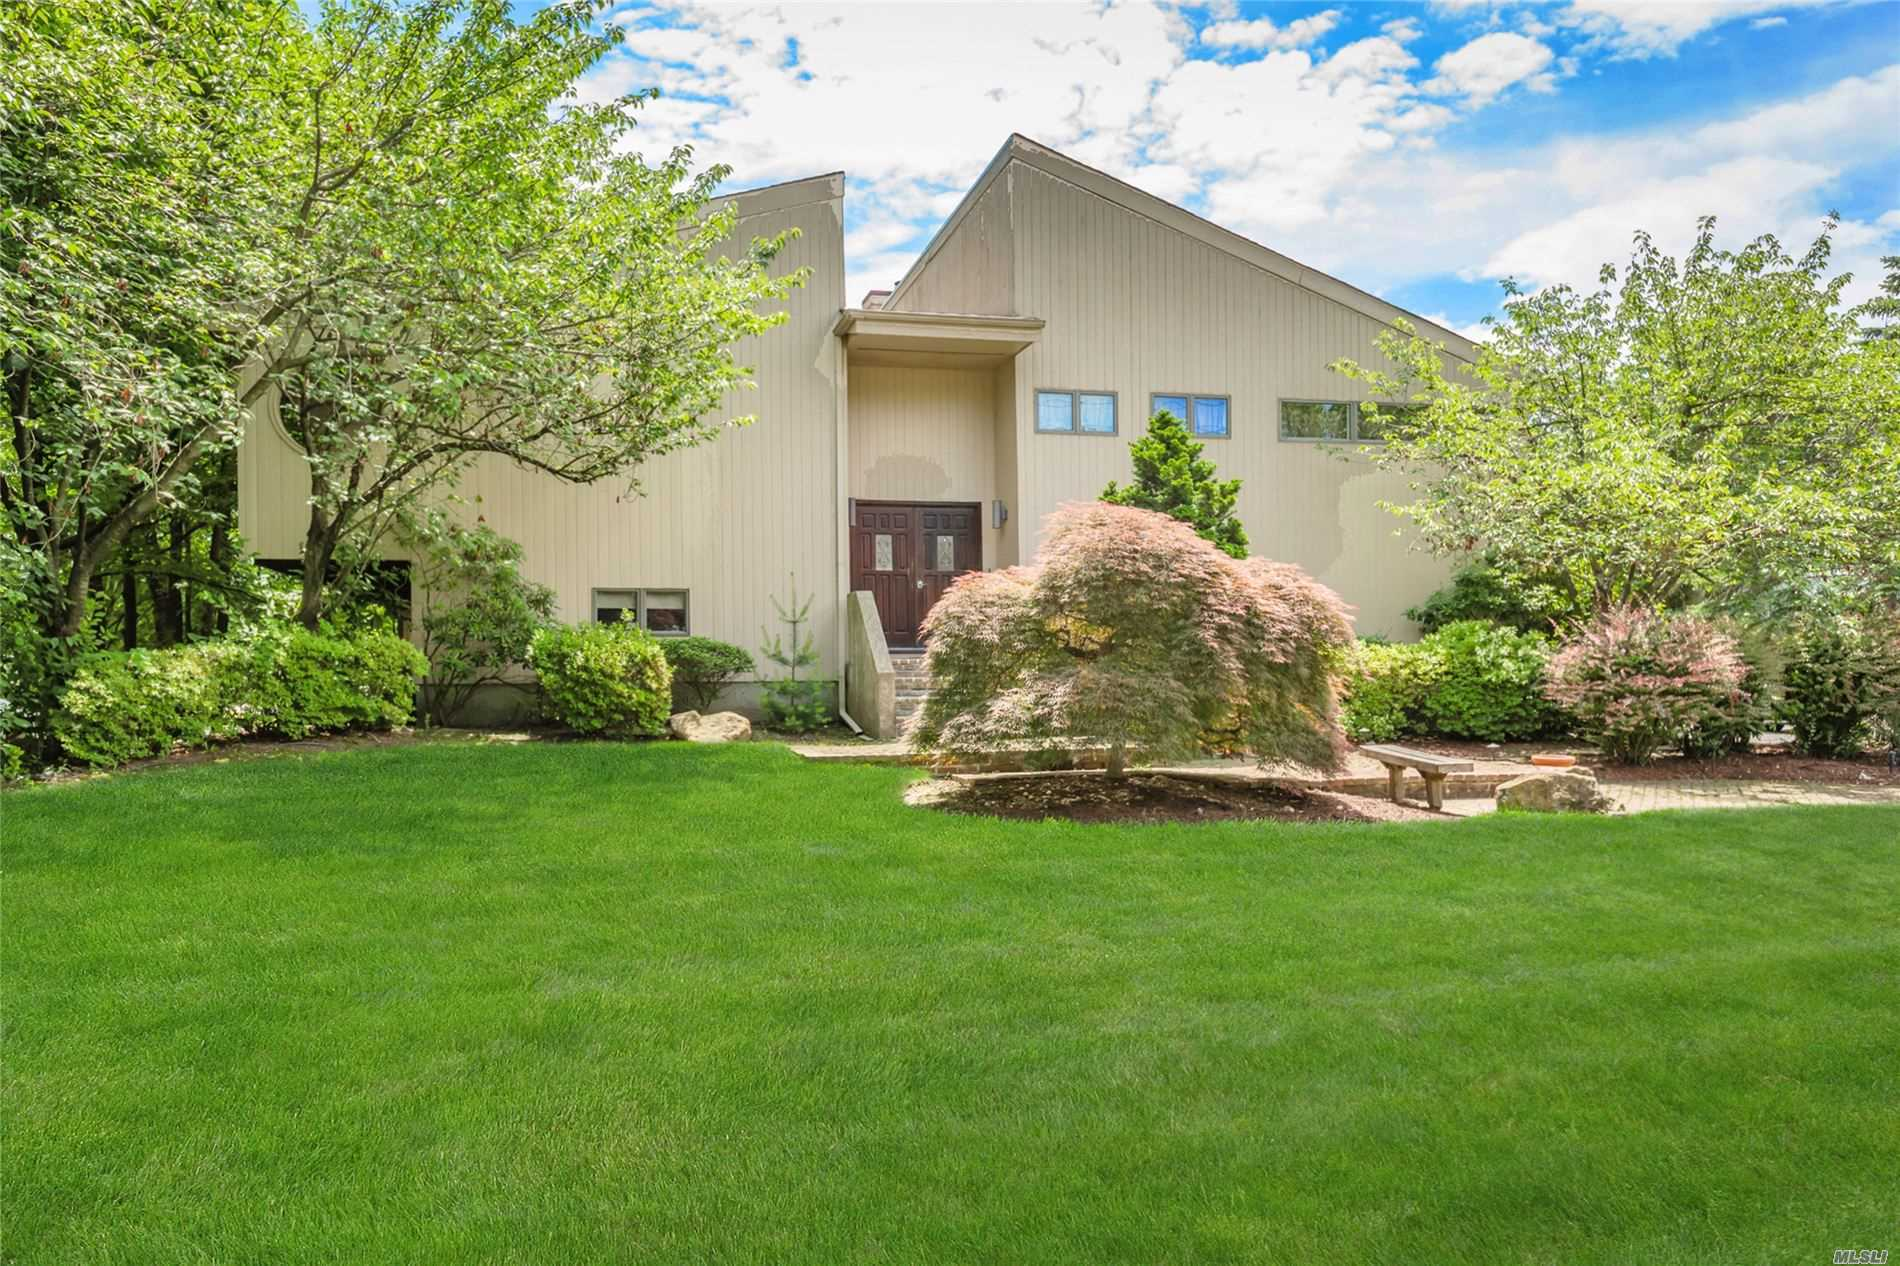 348 Burr Rd - Commack, New York